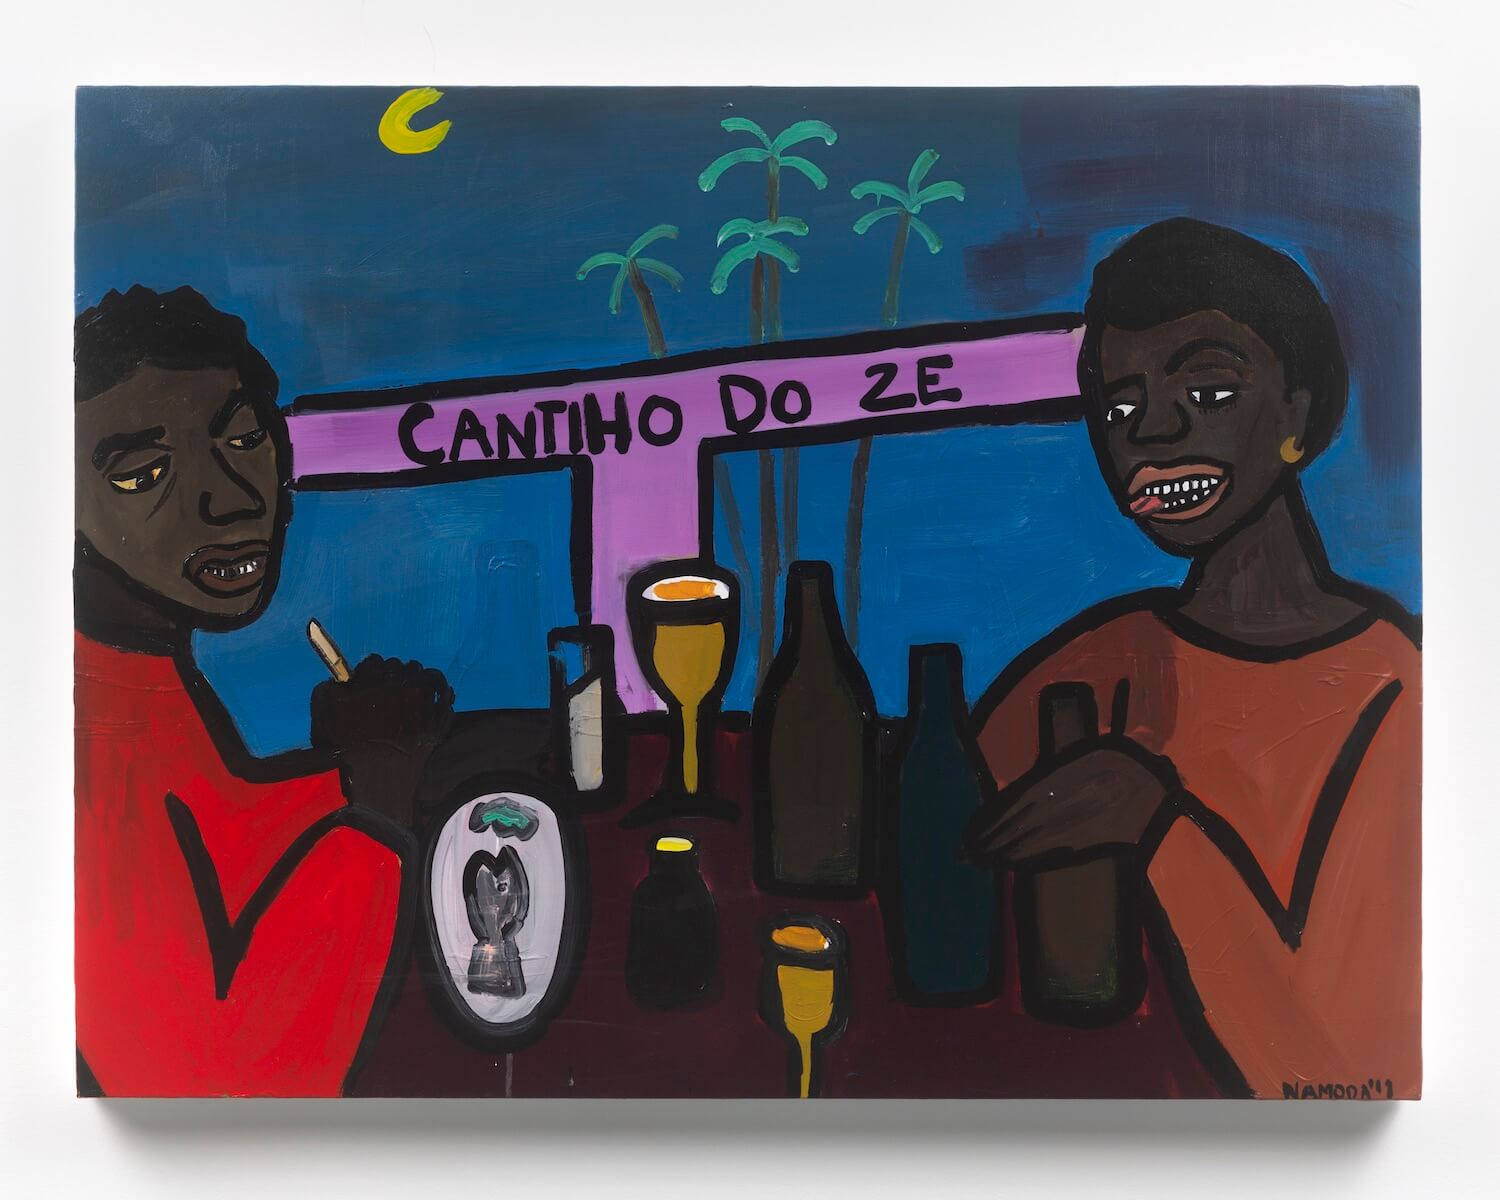 Namoda, Cantinho Do Ze, 2019 (CN 19.017)